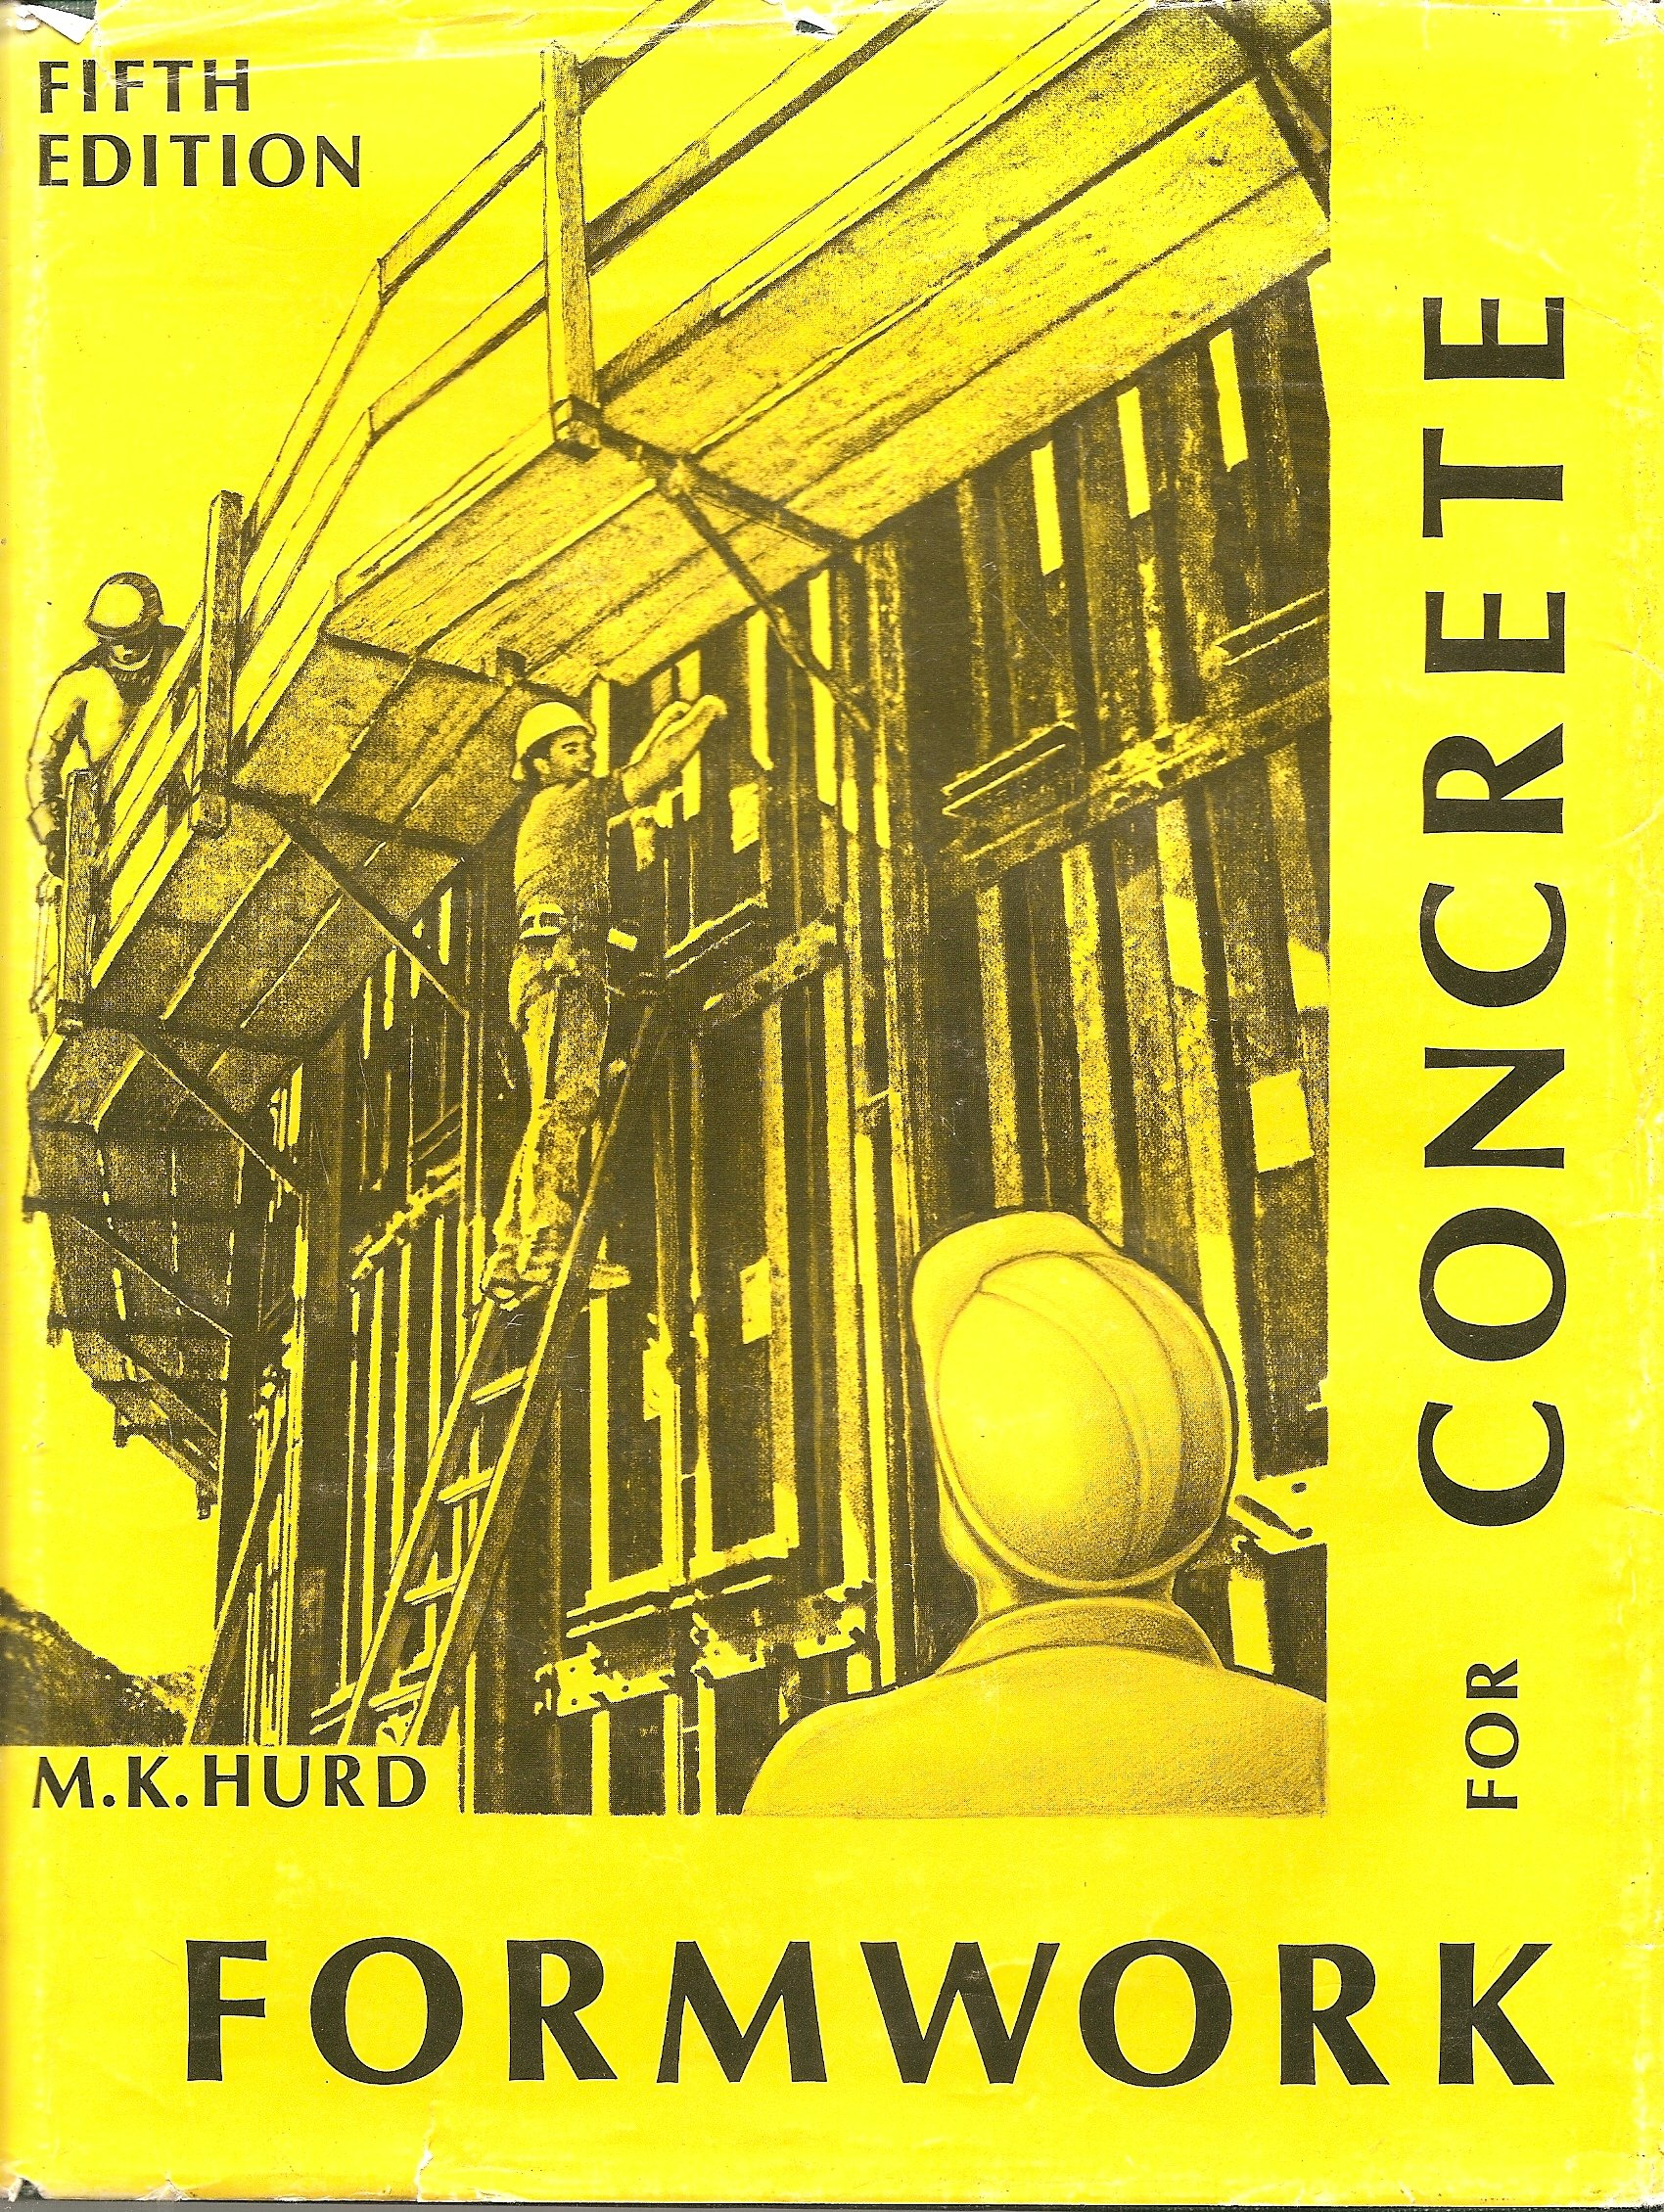 formwork-for-concrete-fifth-edition